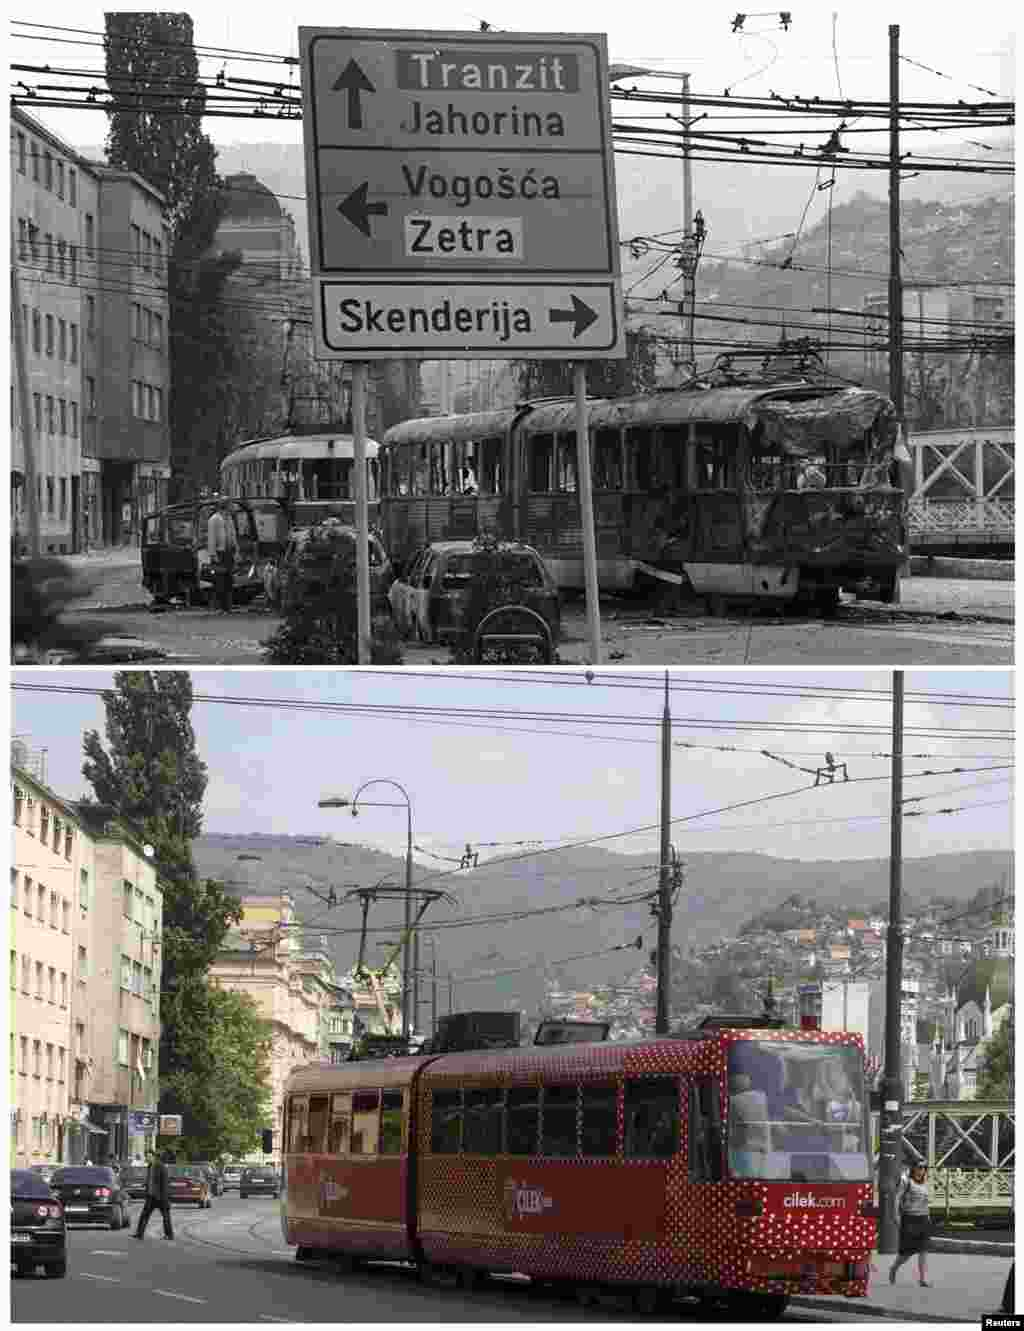 The wreckage of a tram is seen on a street following shelling in the Skenderija district in Sarajevo in March 1992. A tram travels down along the same street on May 30, 2011.